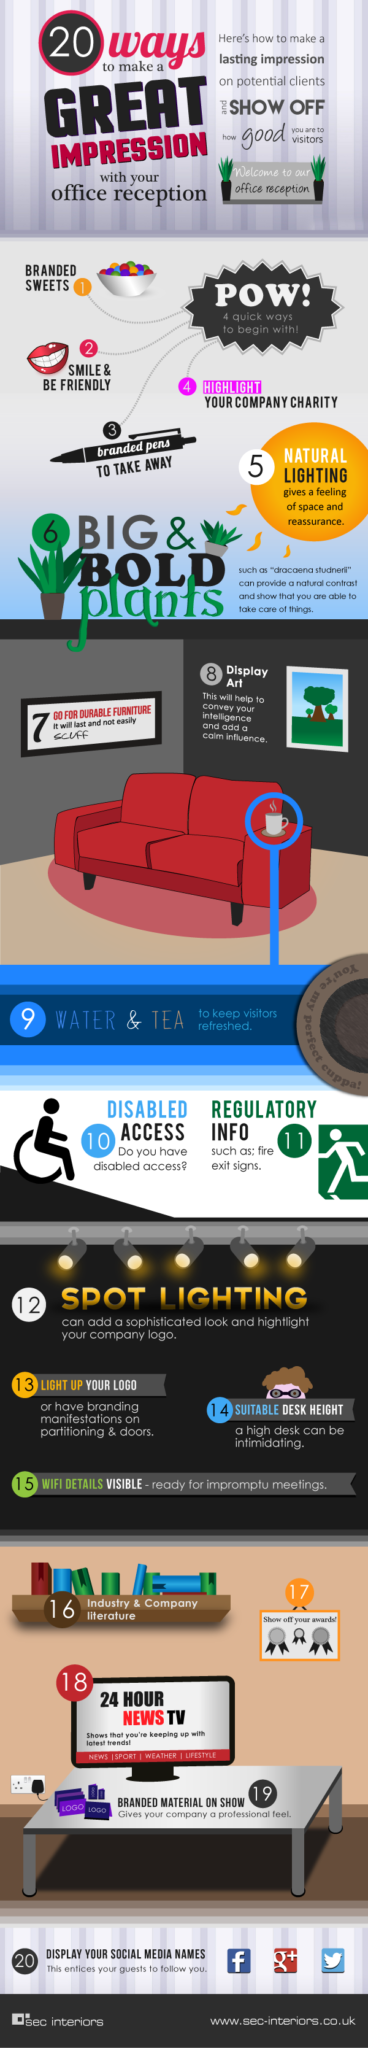 Office Reception Design Infographic